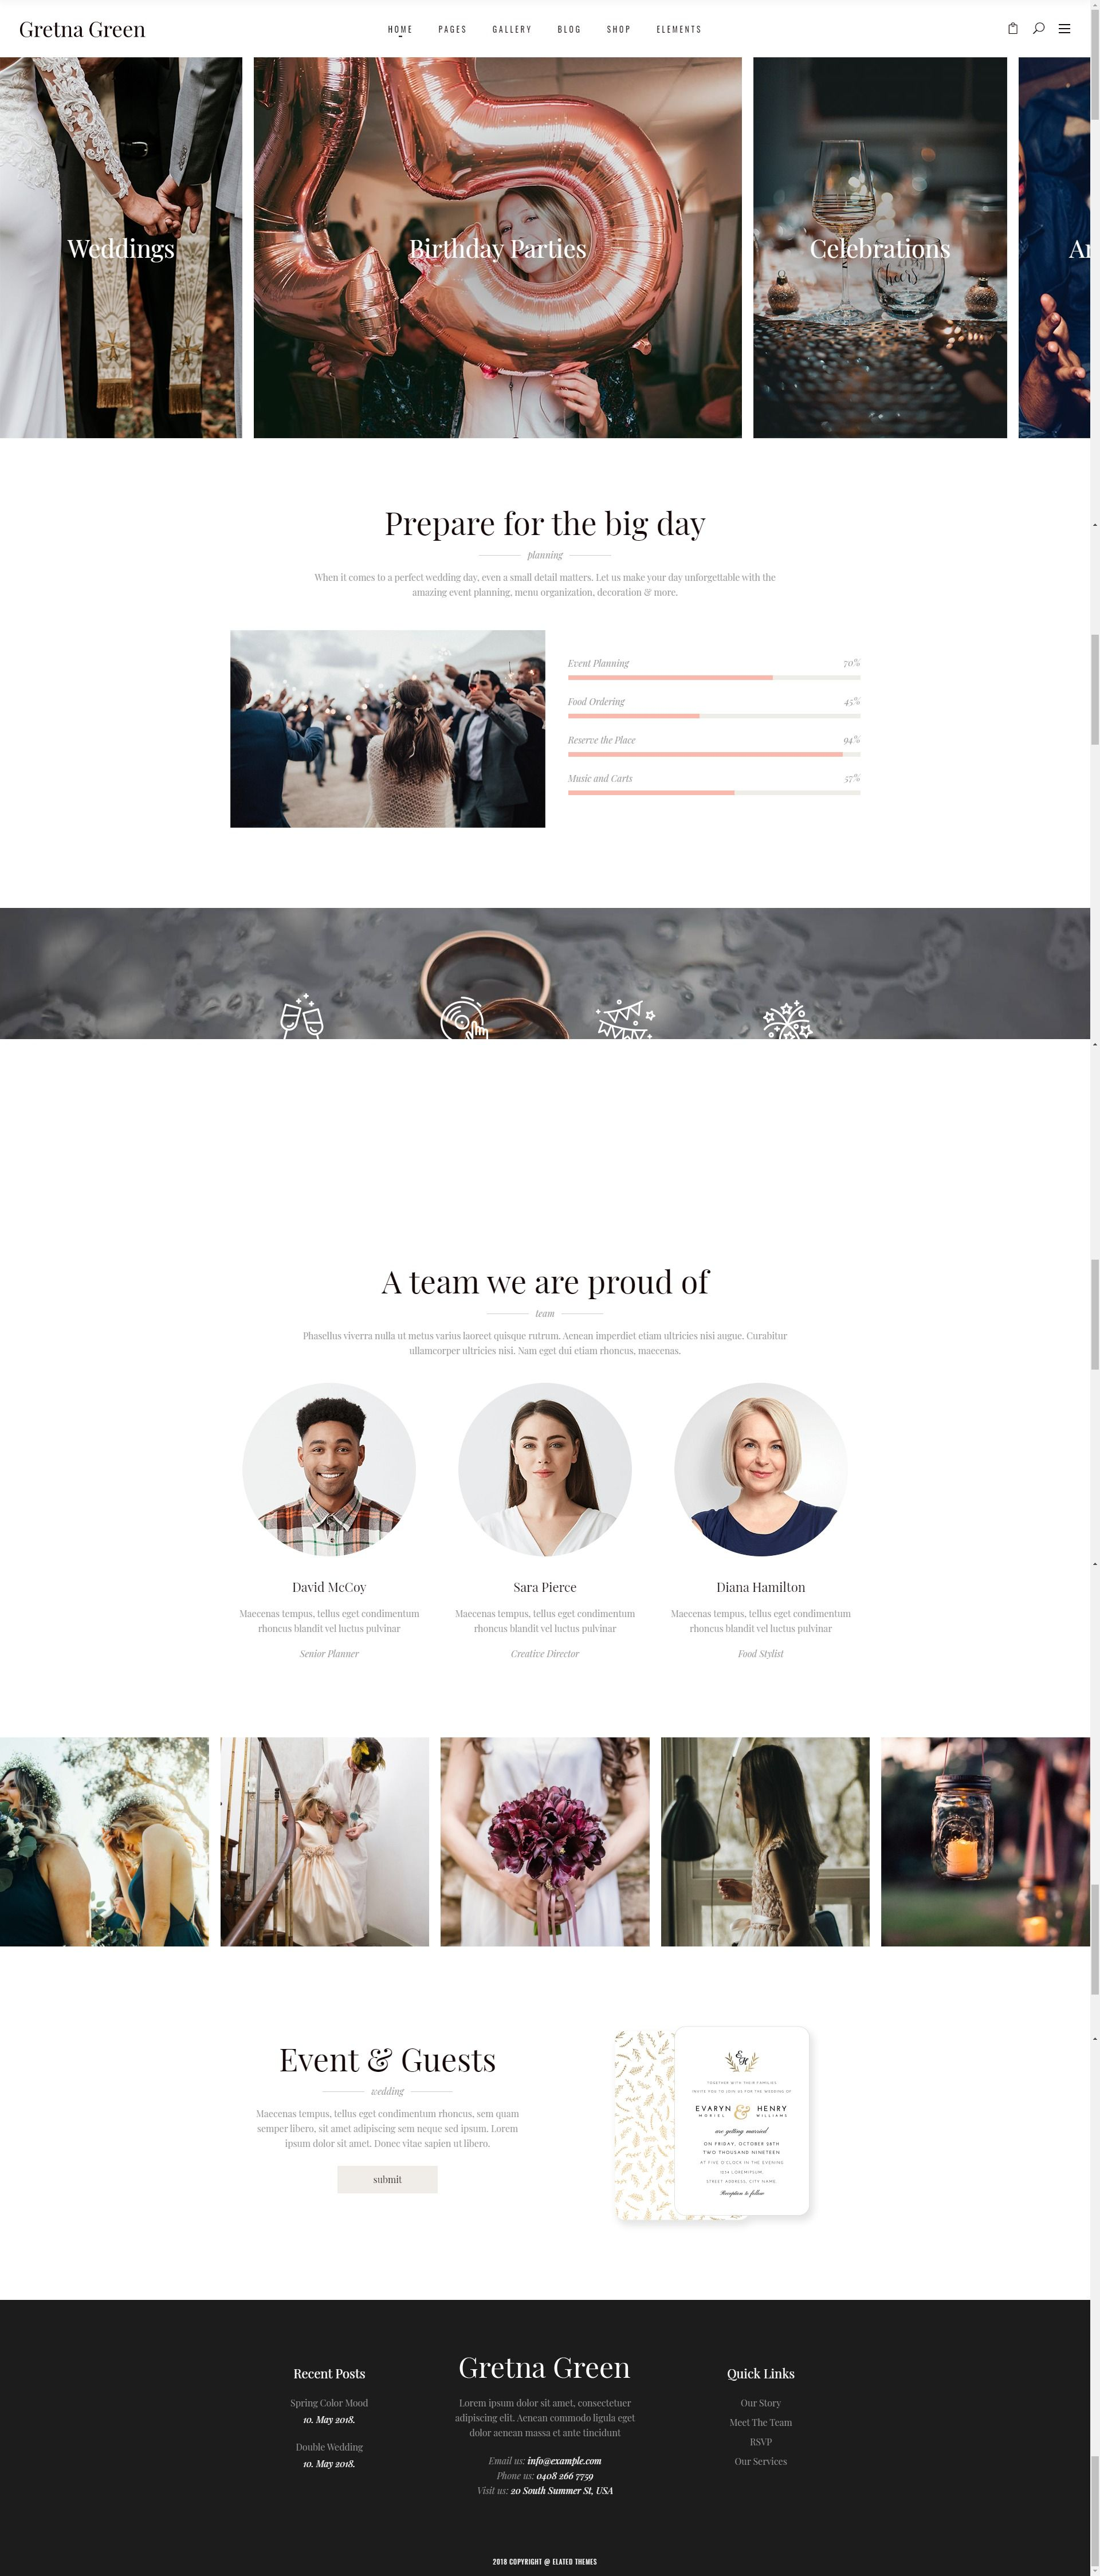 Gretna Green Theme For Wedding Planners And Celebrations Stylelib In 2020 Wedding Event Planning Green Event Gretna Green